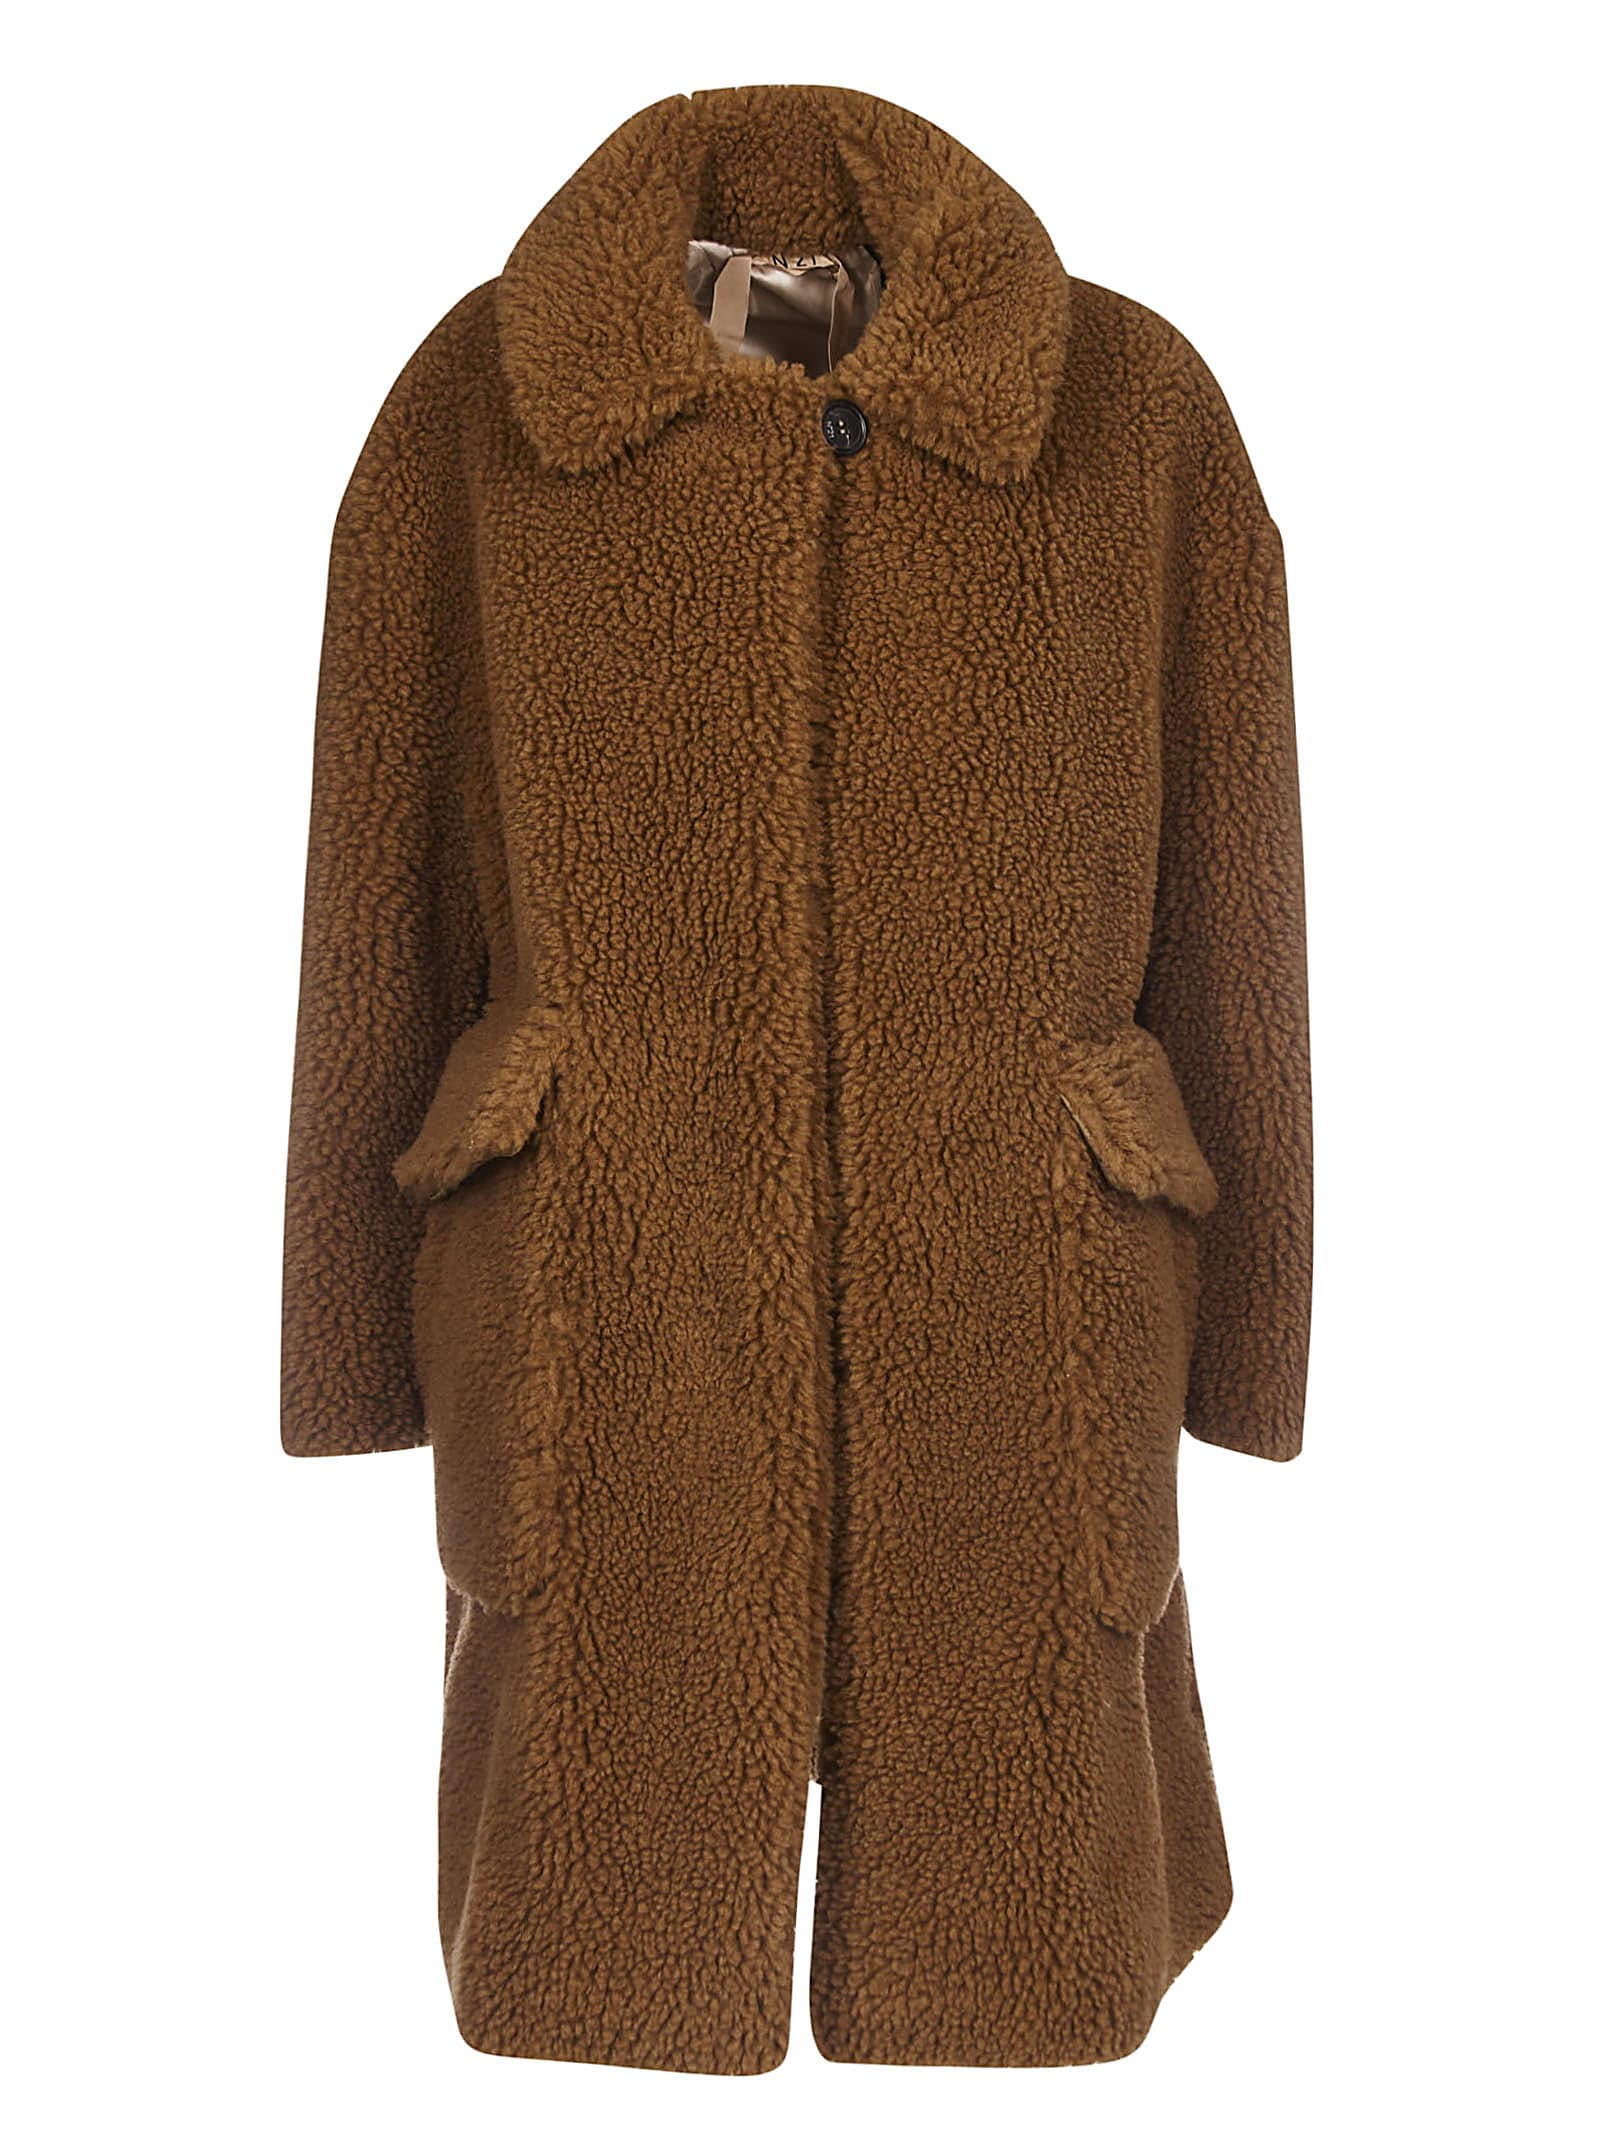 N.21 Fur Applique Coat